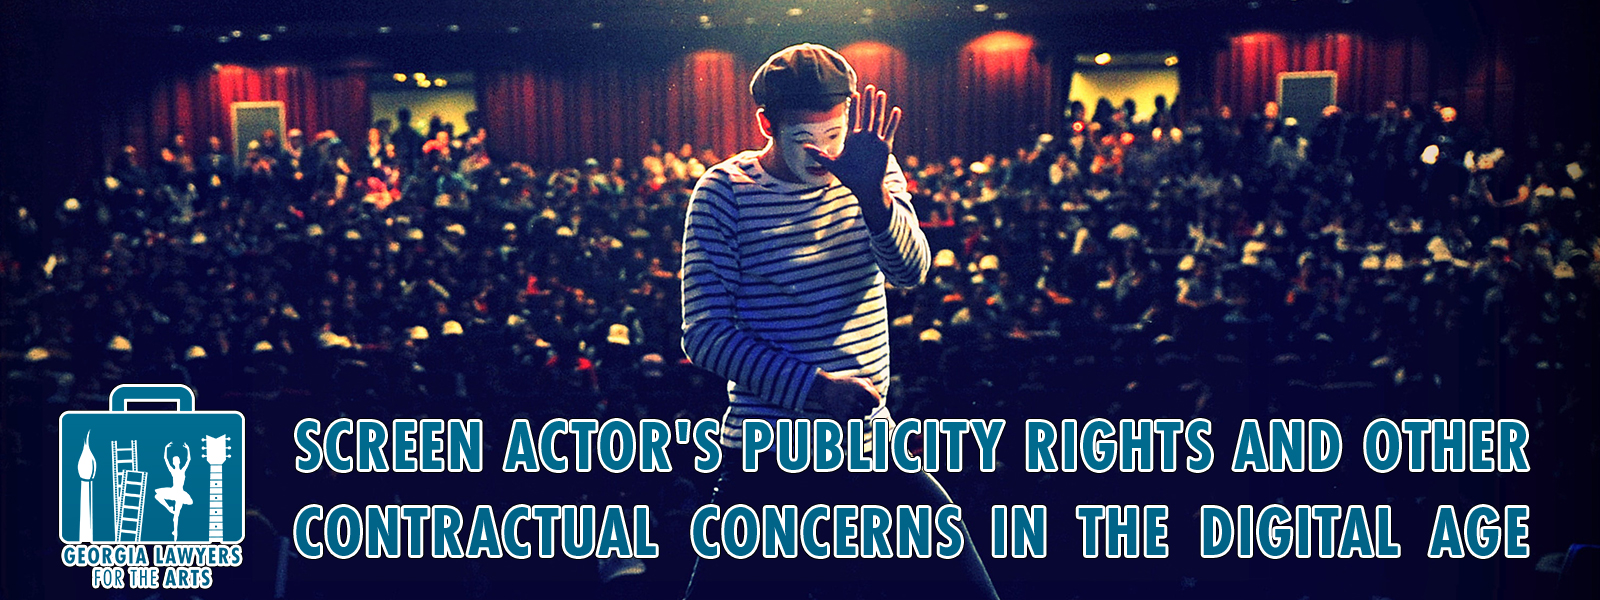 Screen Actor's Publicity Rights and Other Contractual Concerns in the Digital Age (Virtual Seminar)